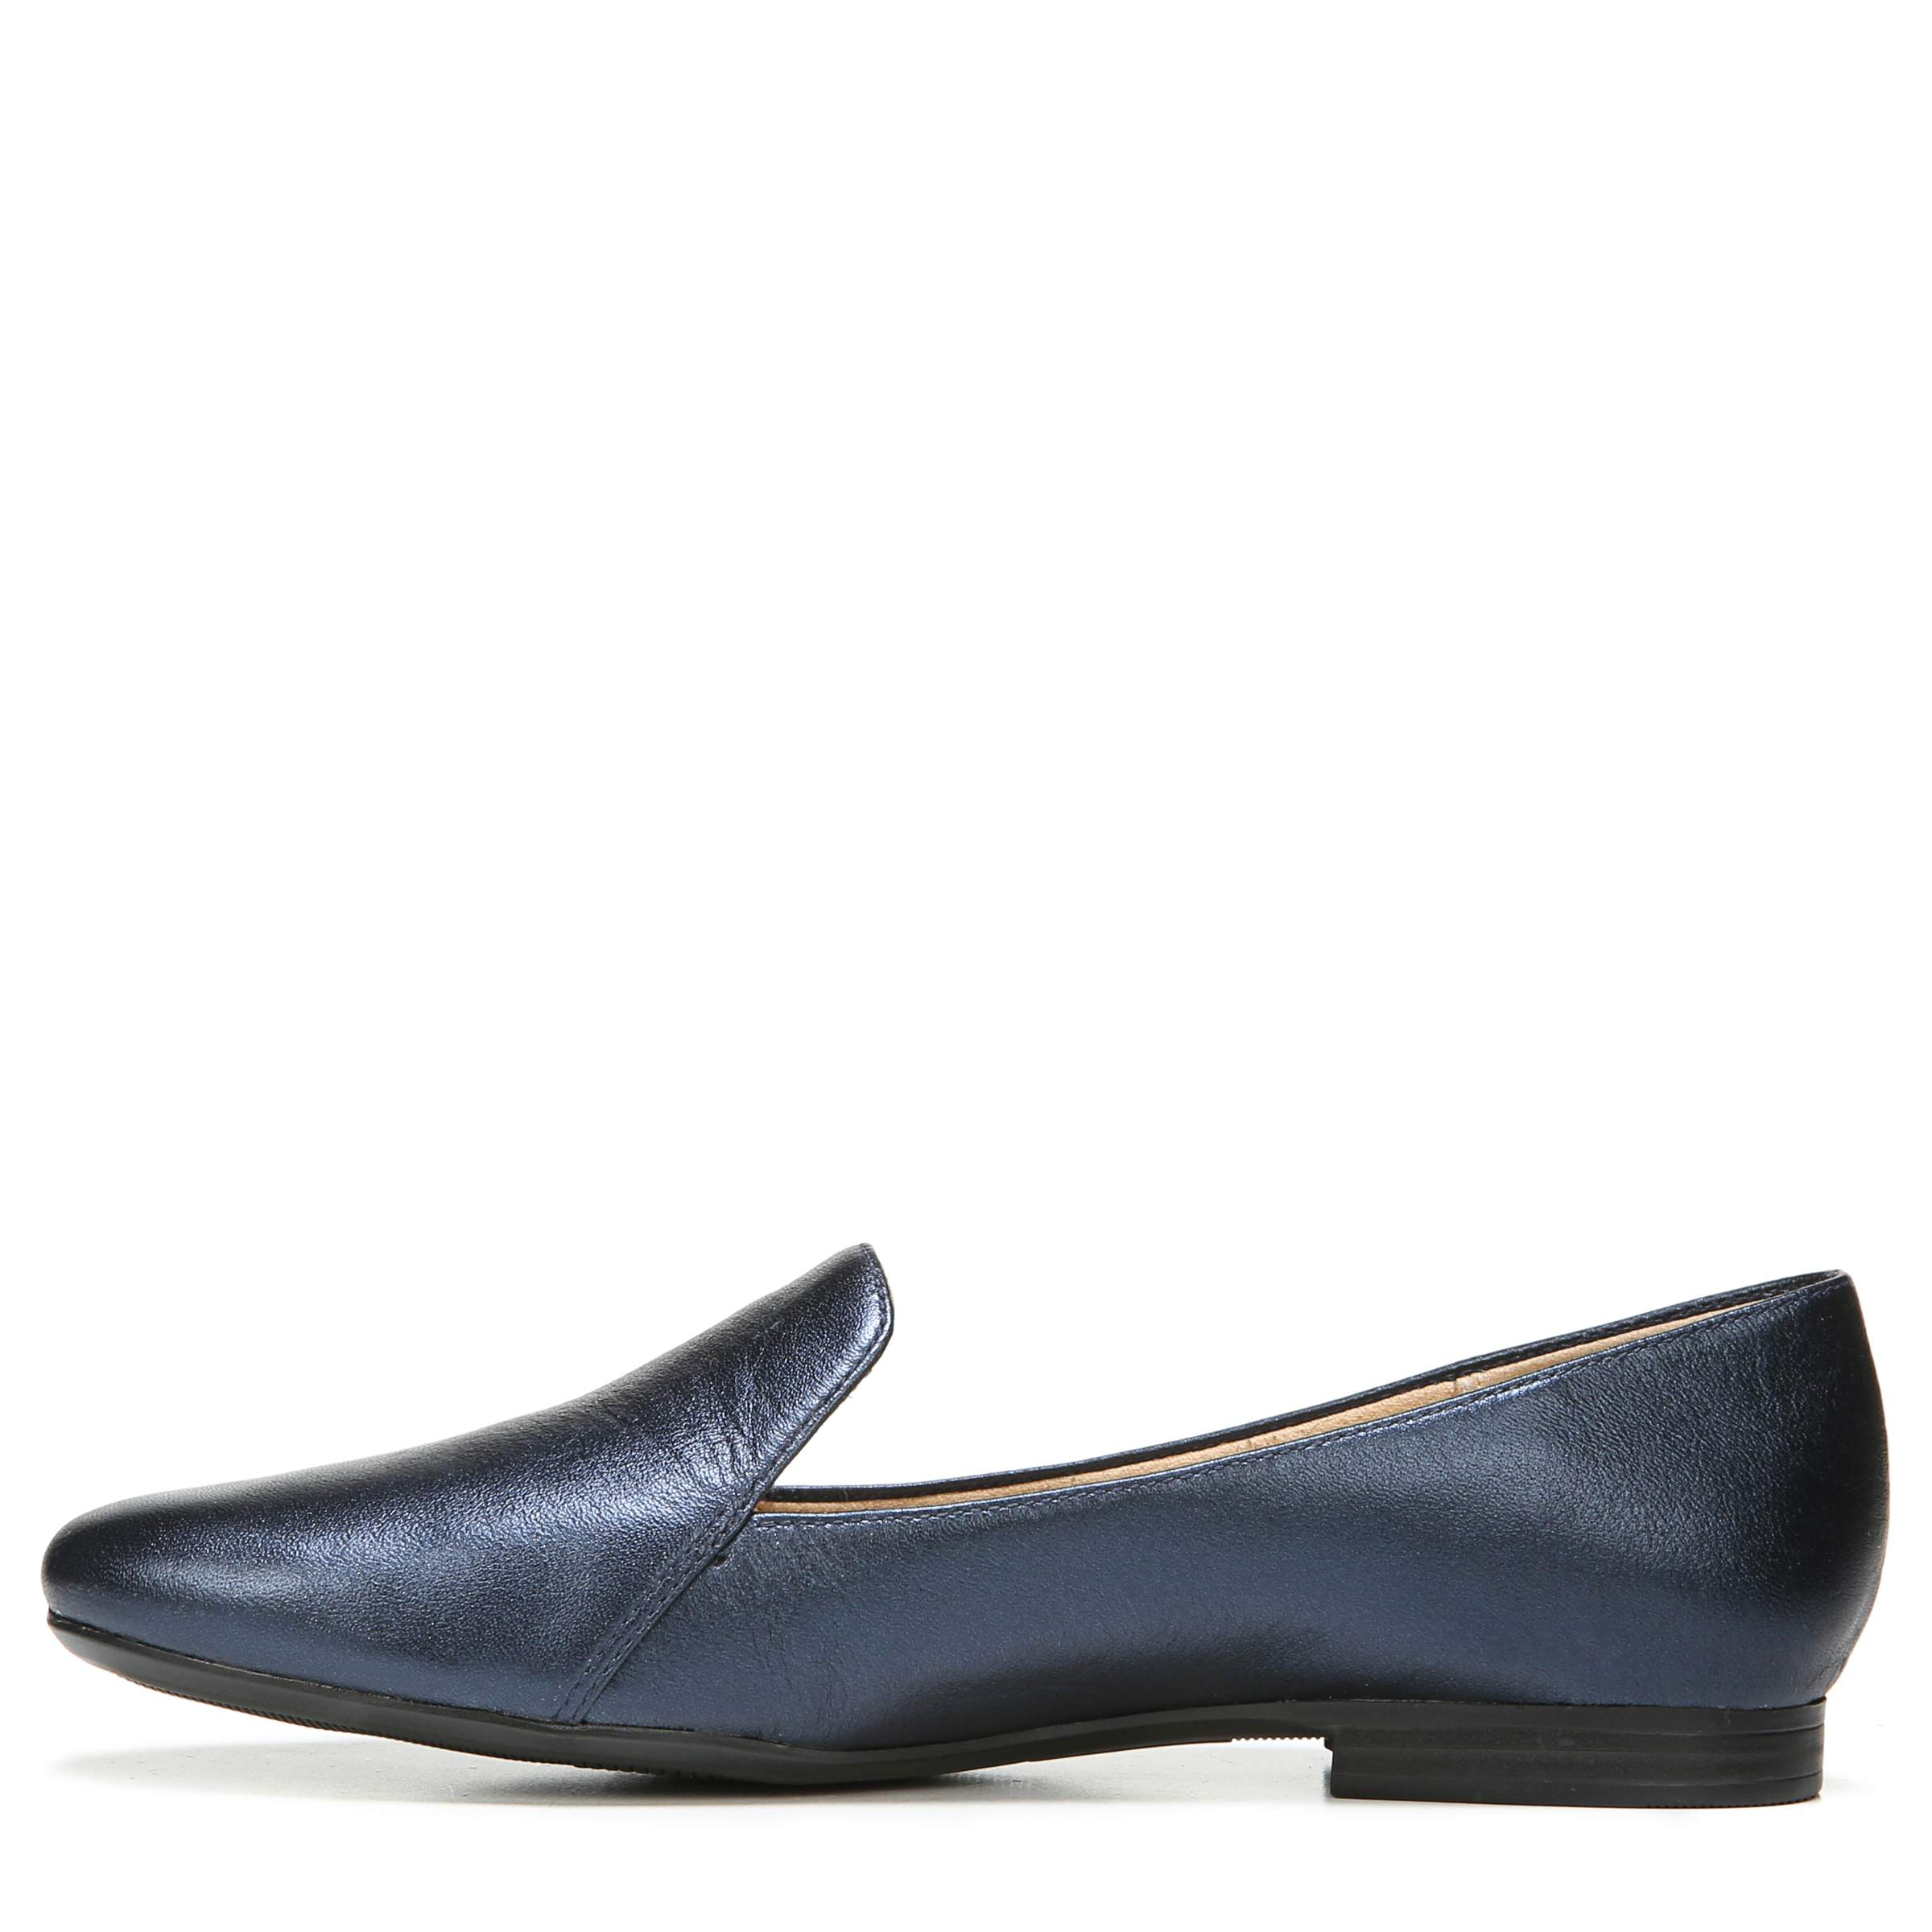 EMILINE FLATS IN INK NAVY METALLIC